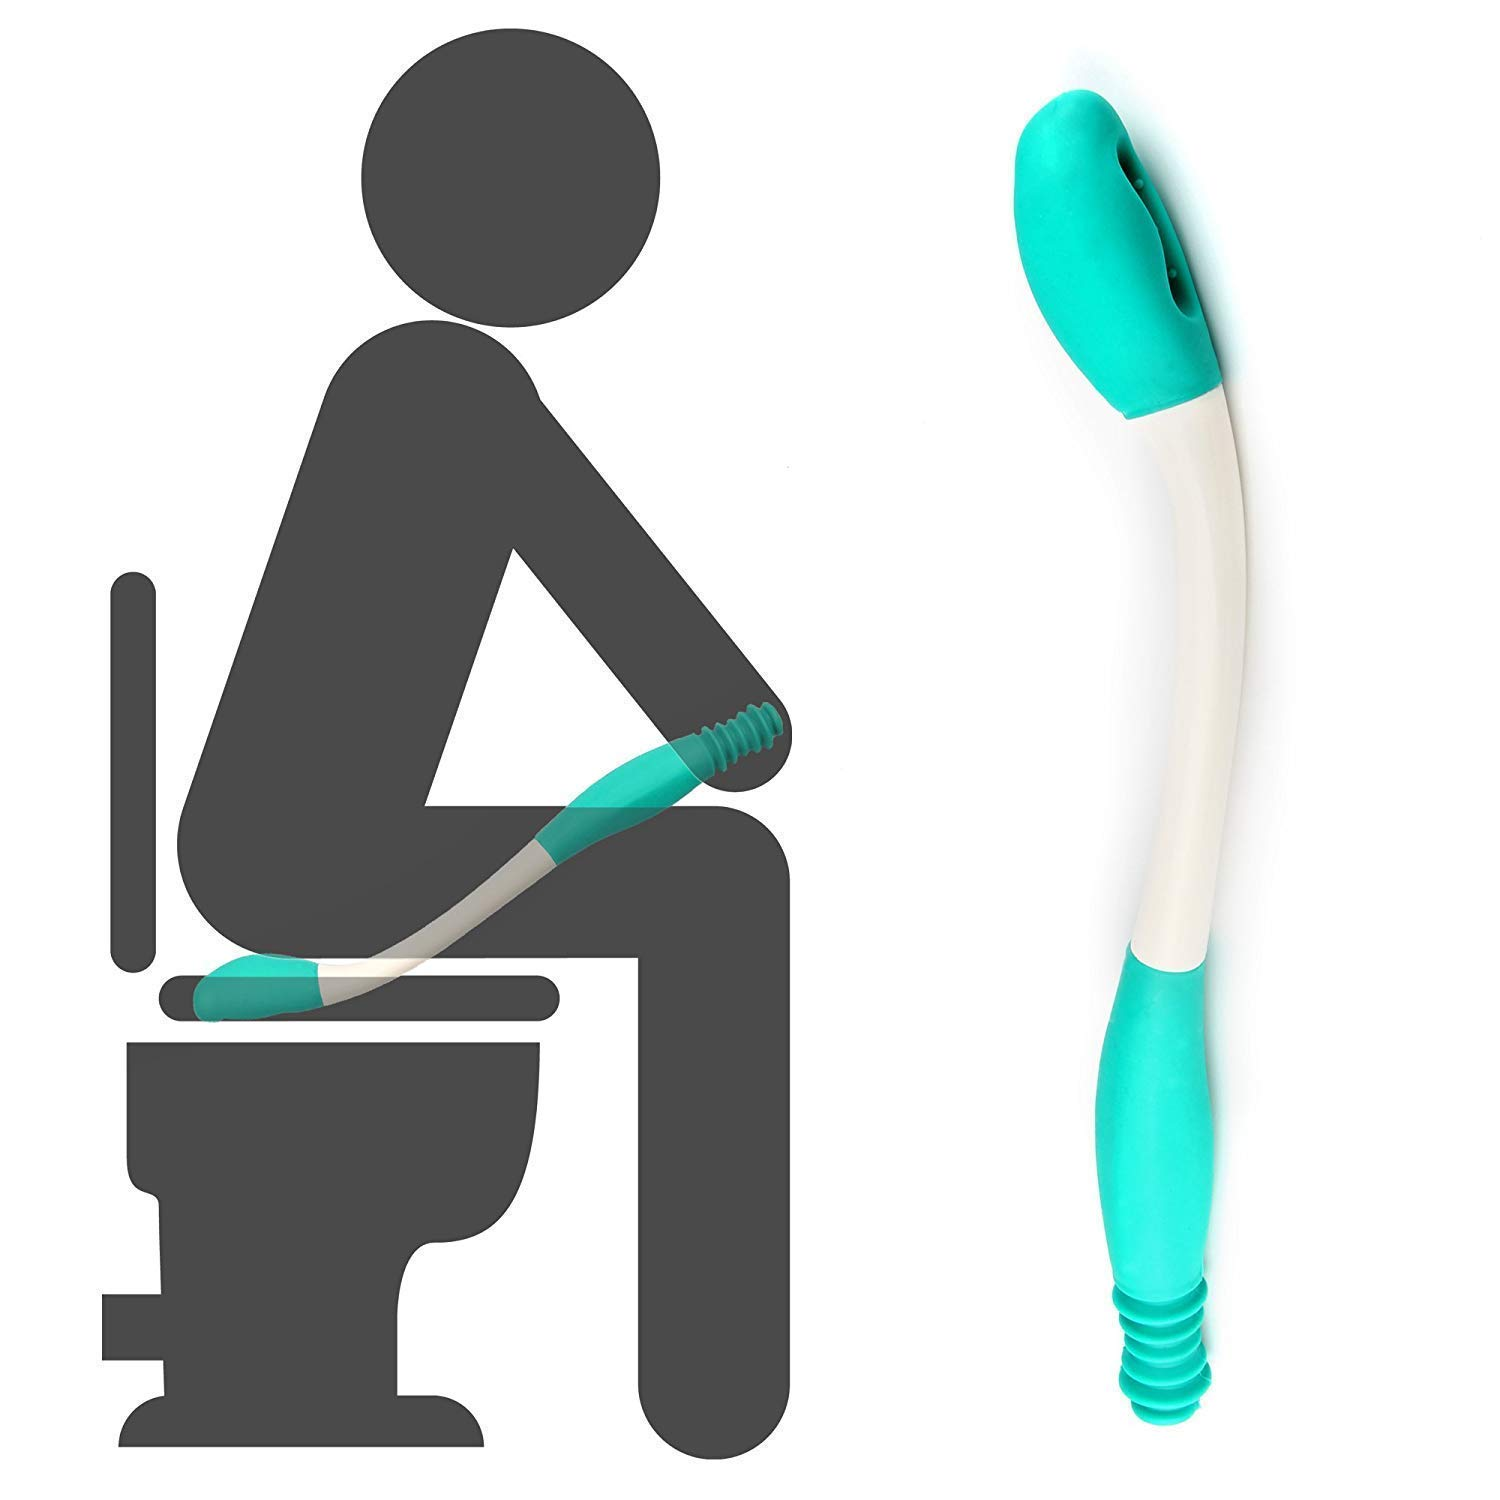 Toilet Aids Tools,Long Reach Comfort Wipe,Extends Your Reach Over 15' Grips Toilet Paper or Pre-Moistened Wipes by HWMY